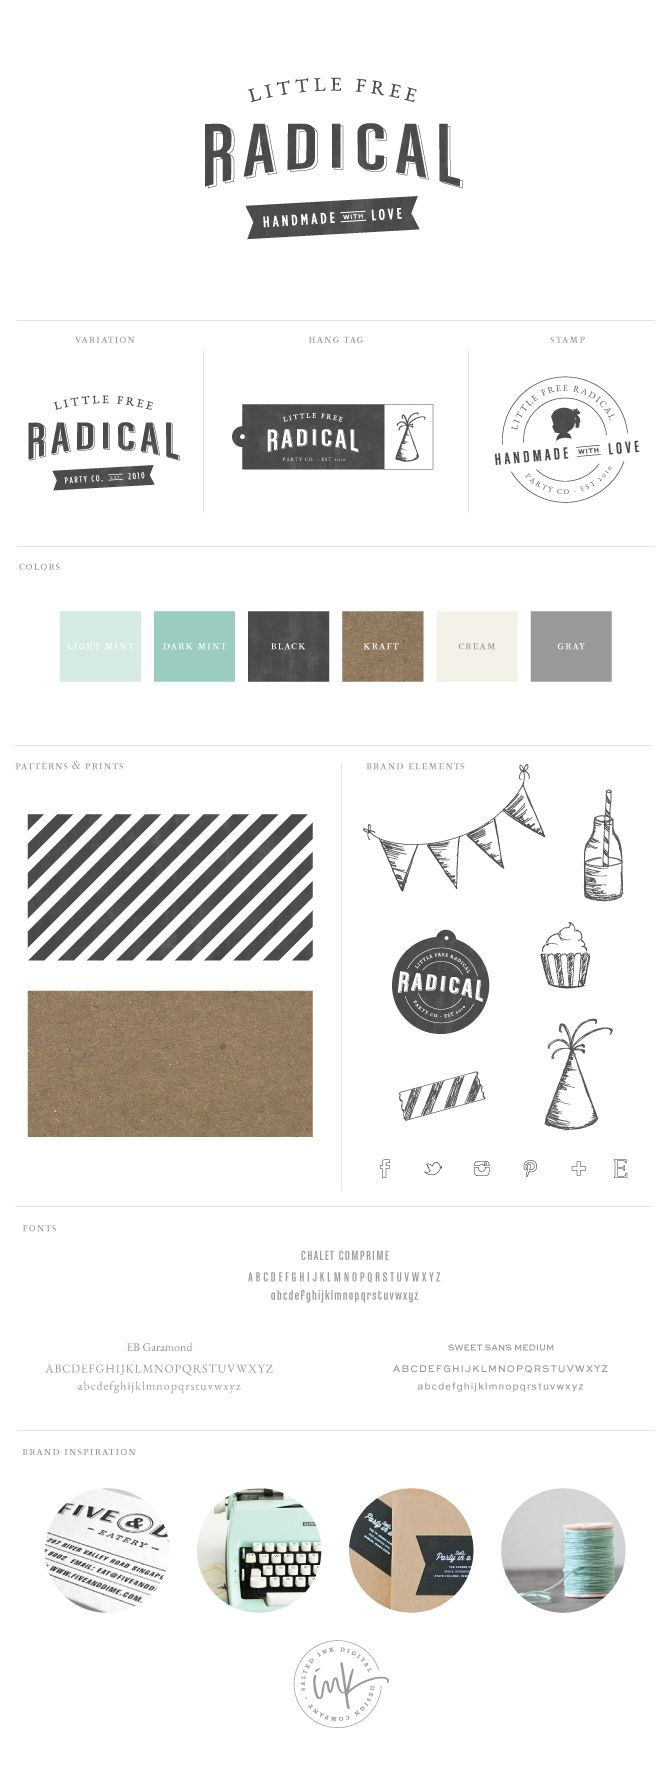 Brand Launch - Little Free Radical by Salted Ink Digital Design Co.